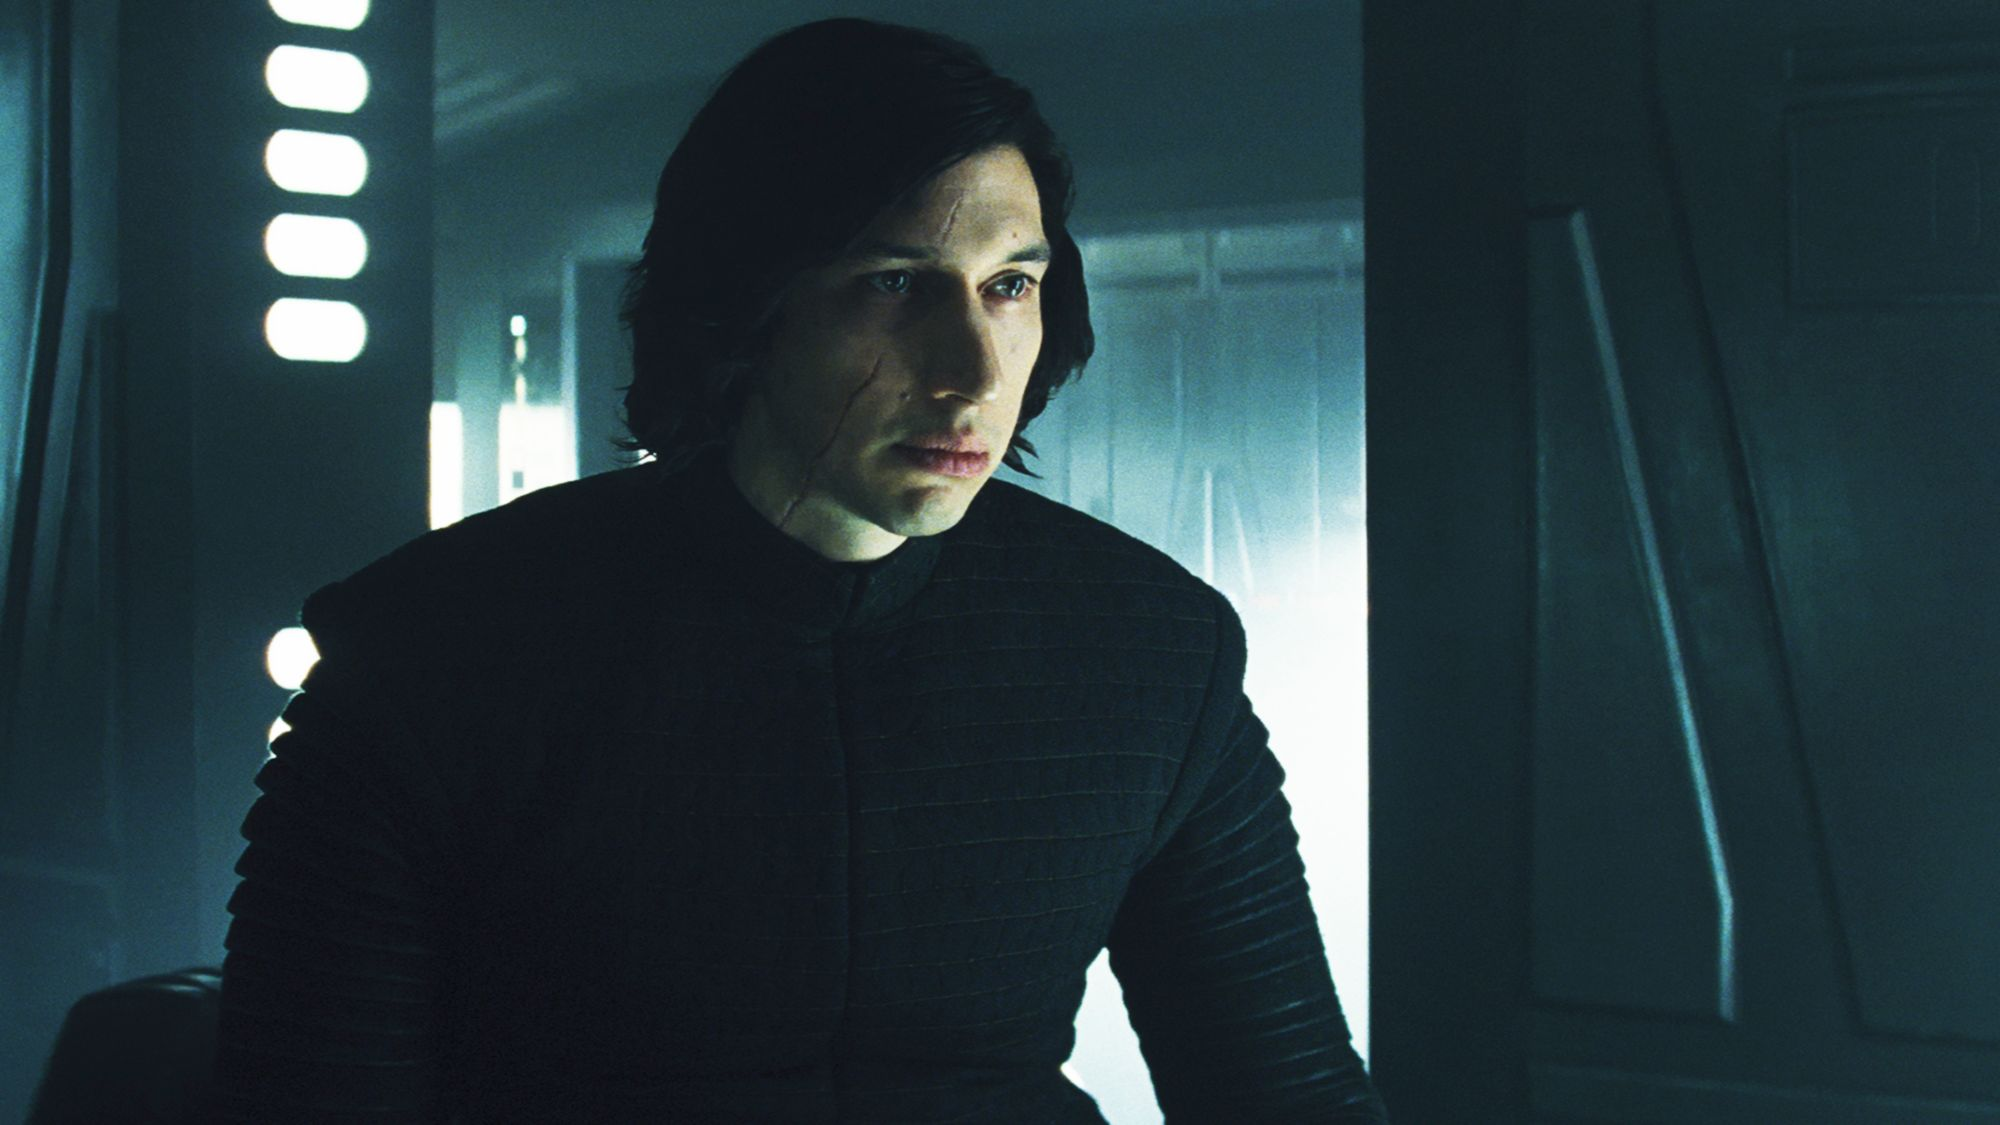 Star Wars The Last Jedi hub: Kylo